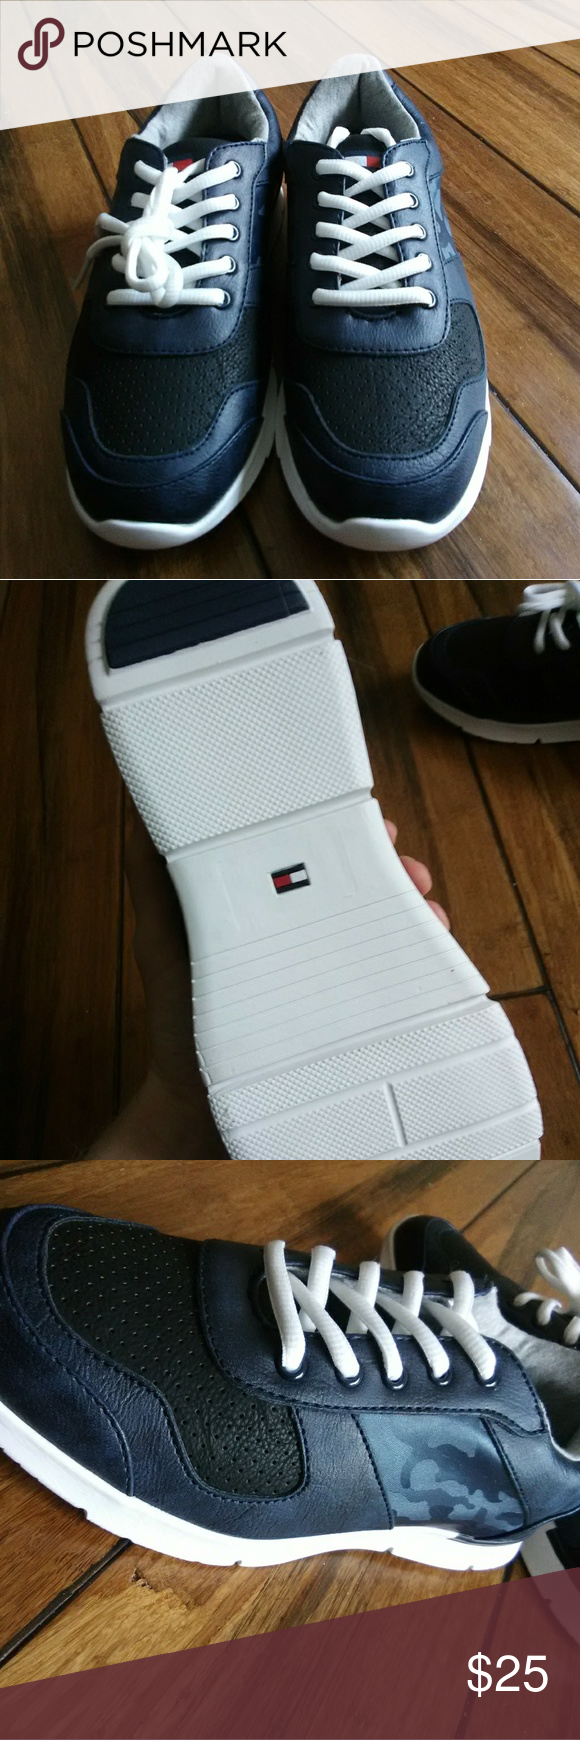 Tommy Hilfiger Forager size 5 shoes